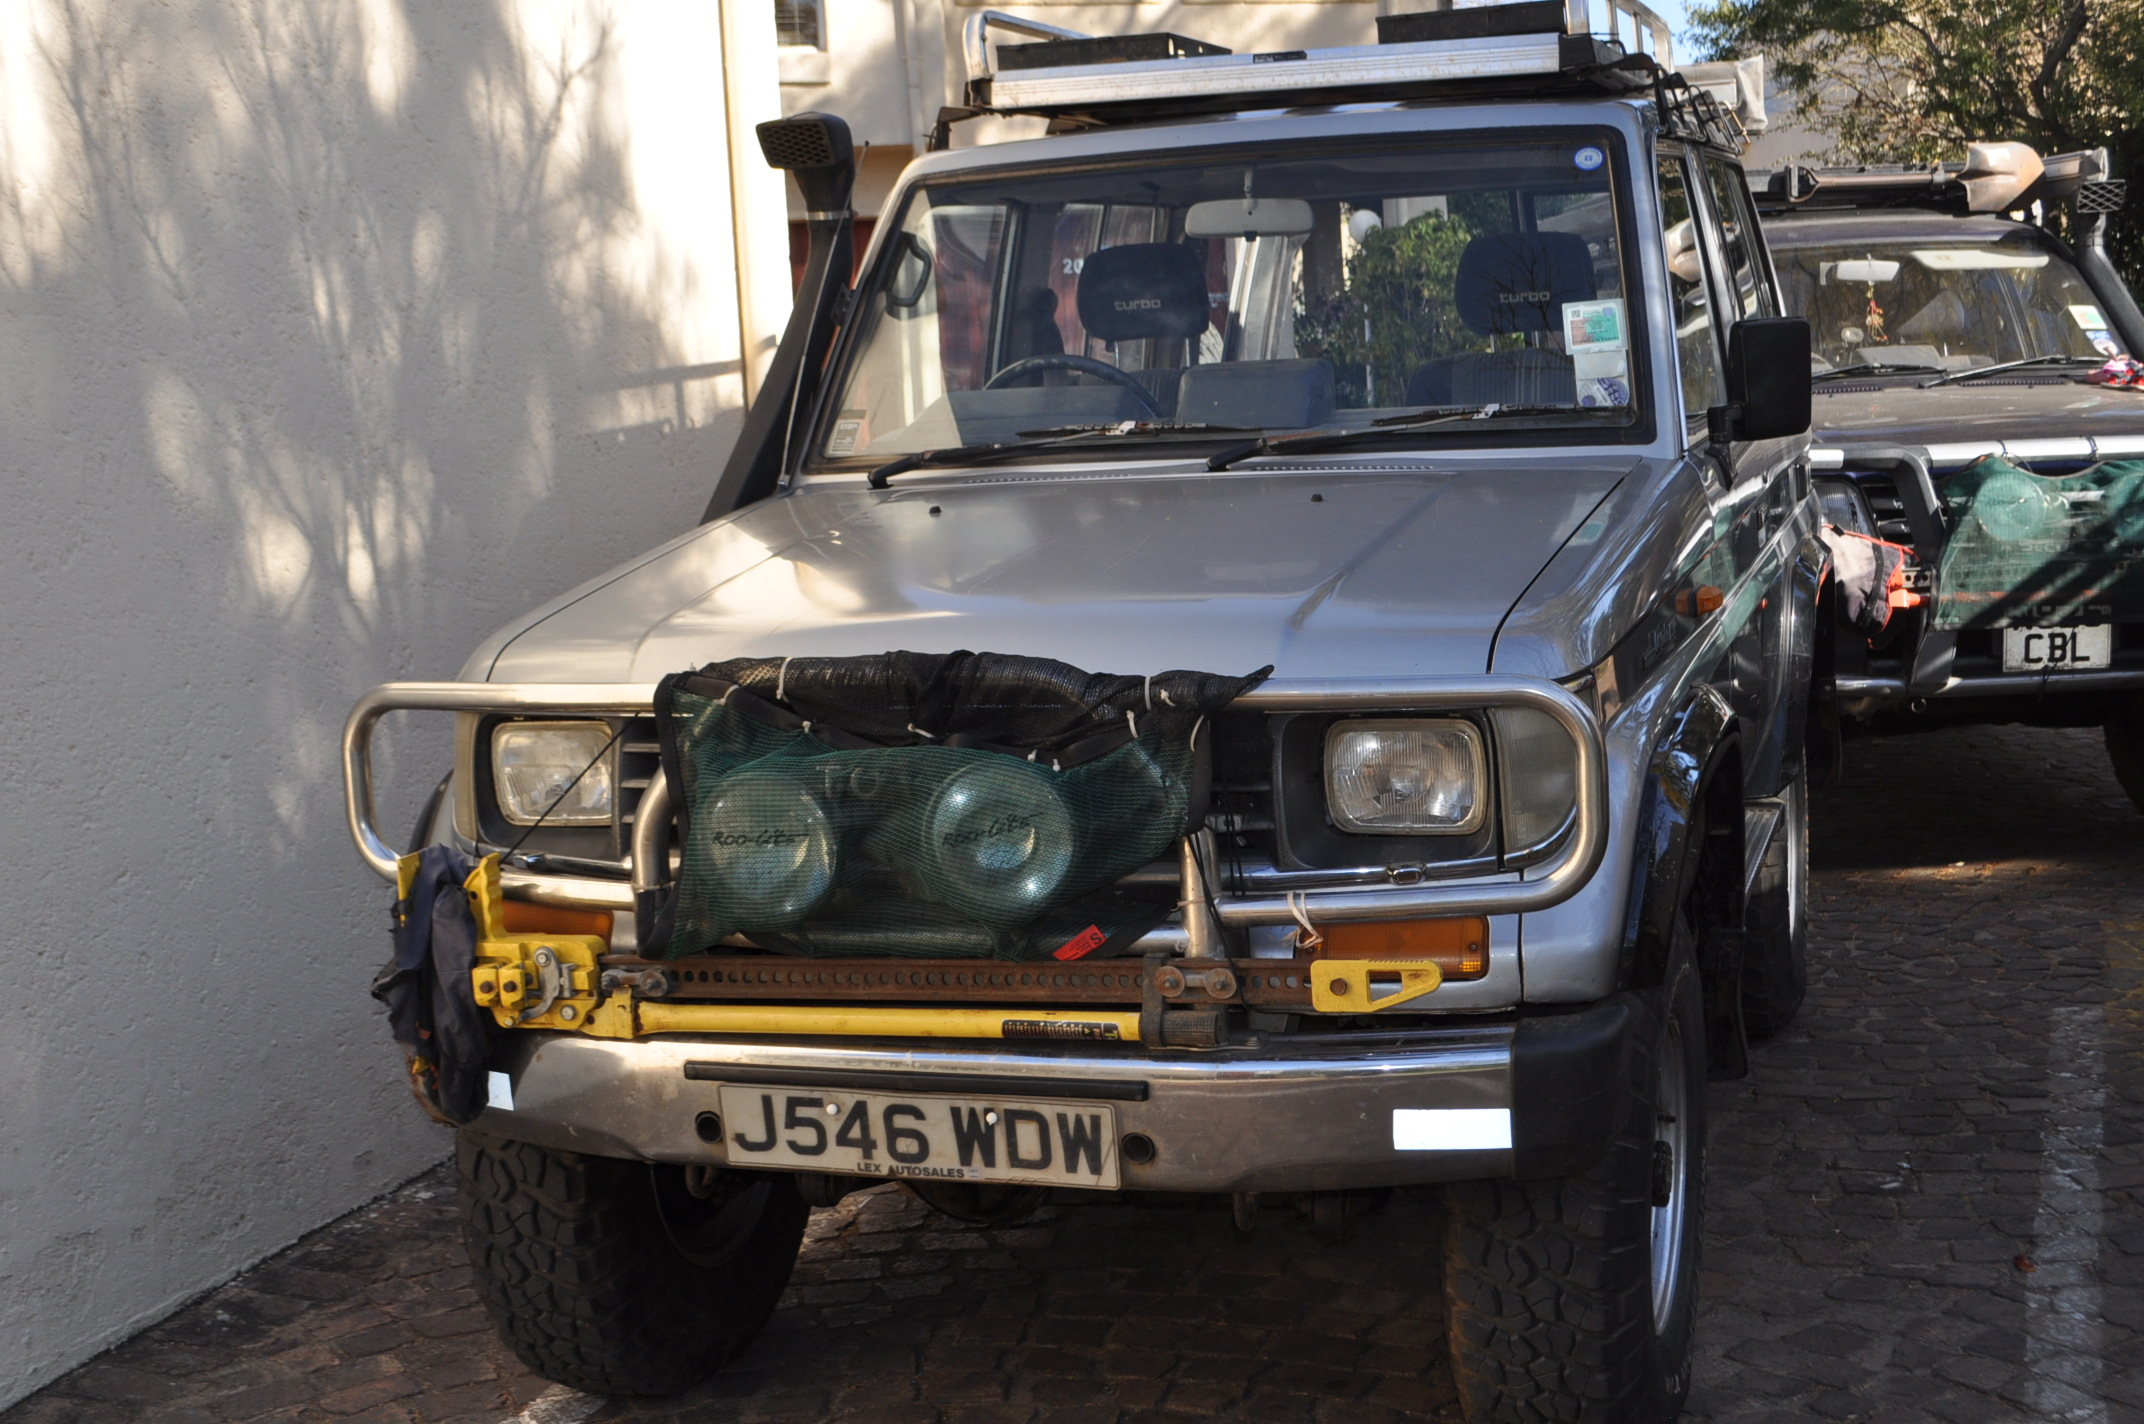 Shorty s back the toyota land cruiser swb armed with x5 bfg mt s